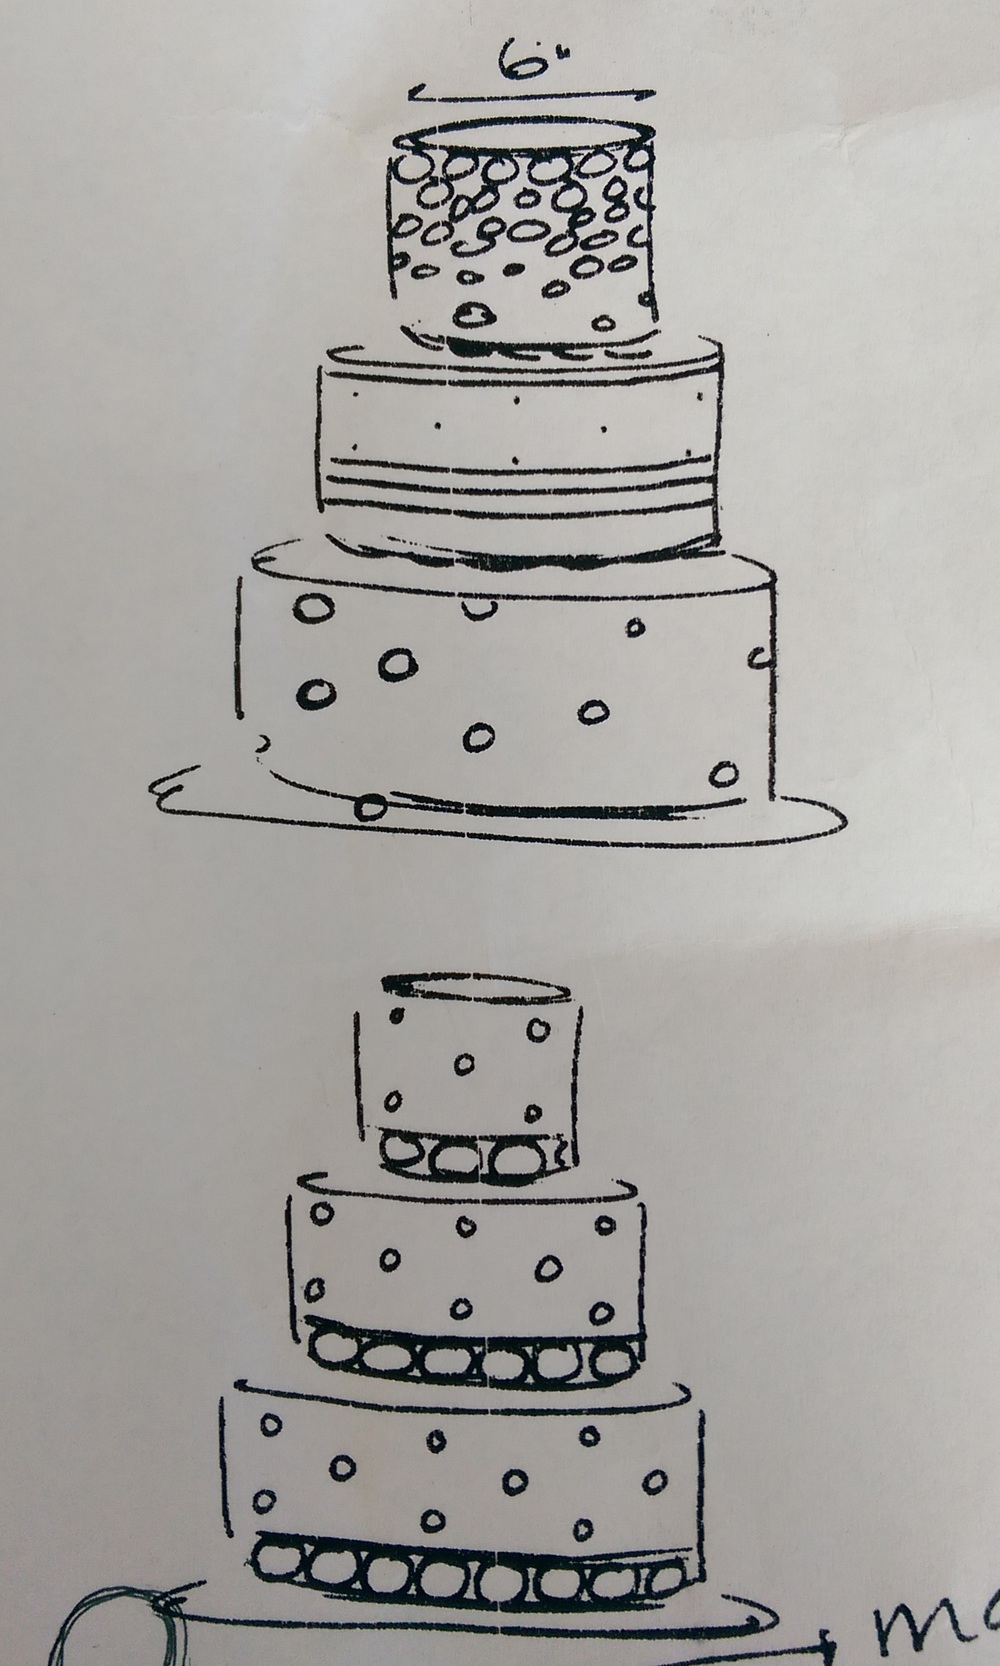 Two of the custom designs from Icing on the Cake that we didn't go with